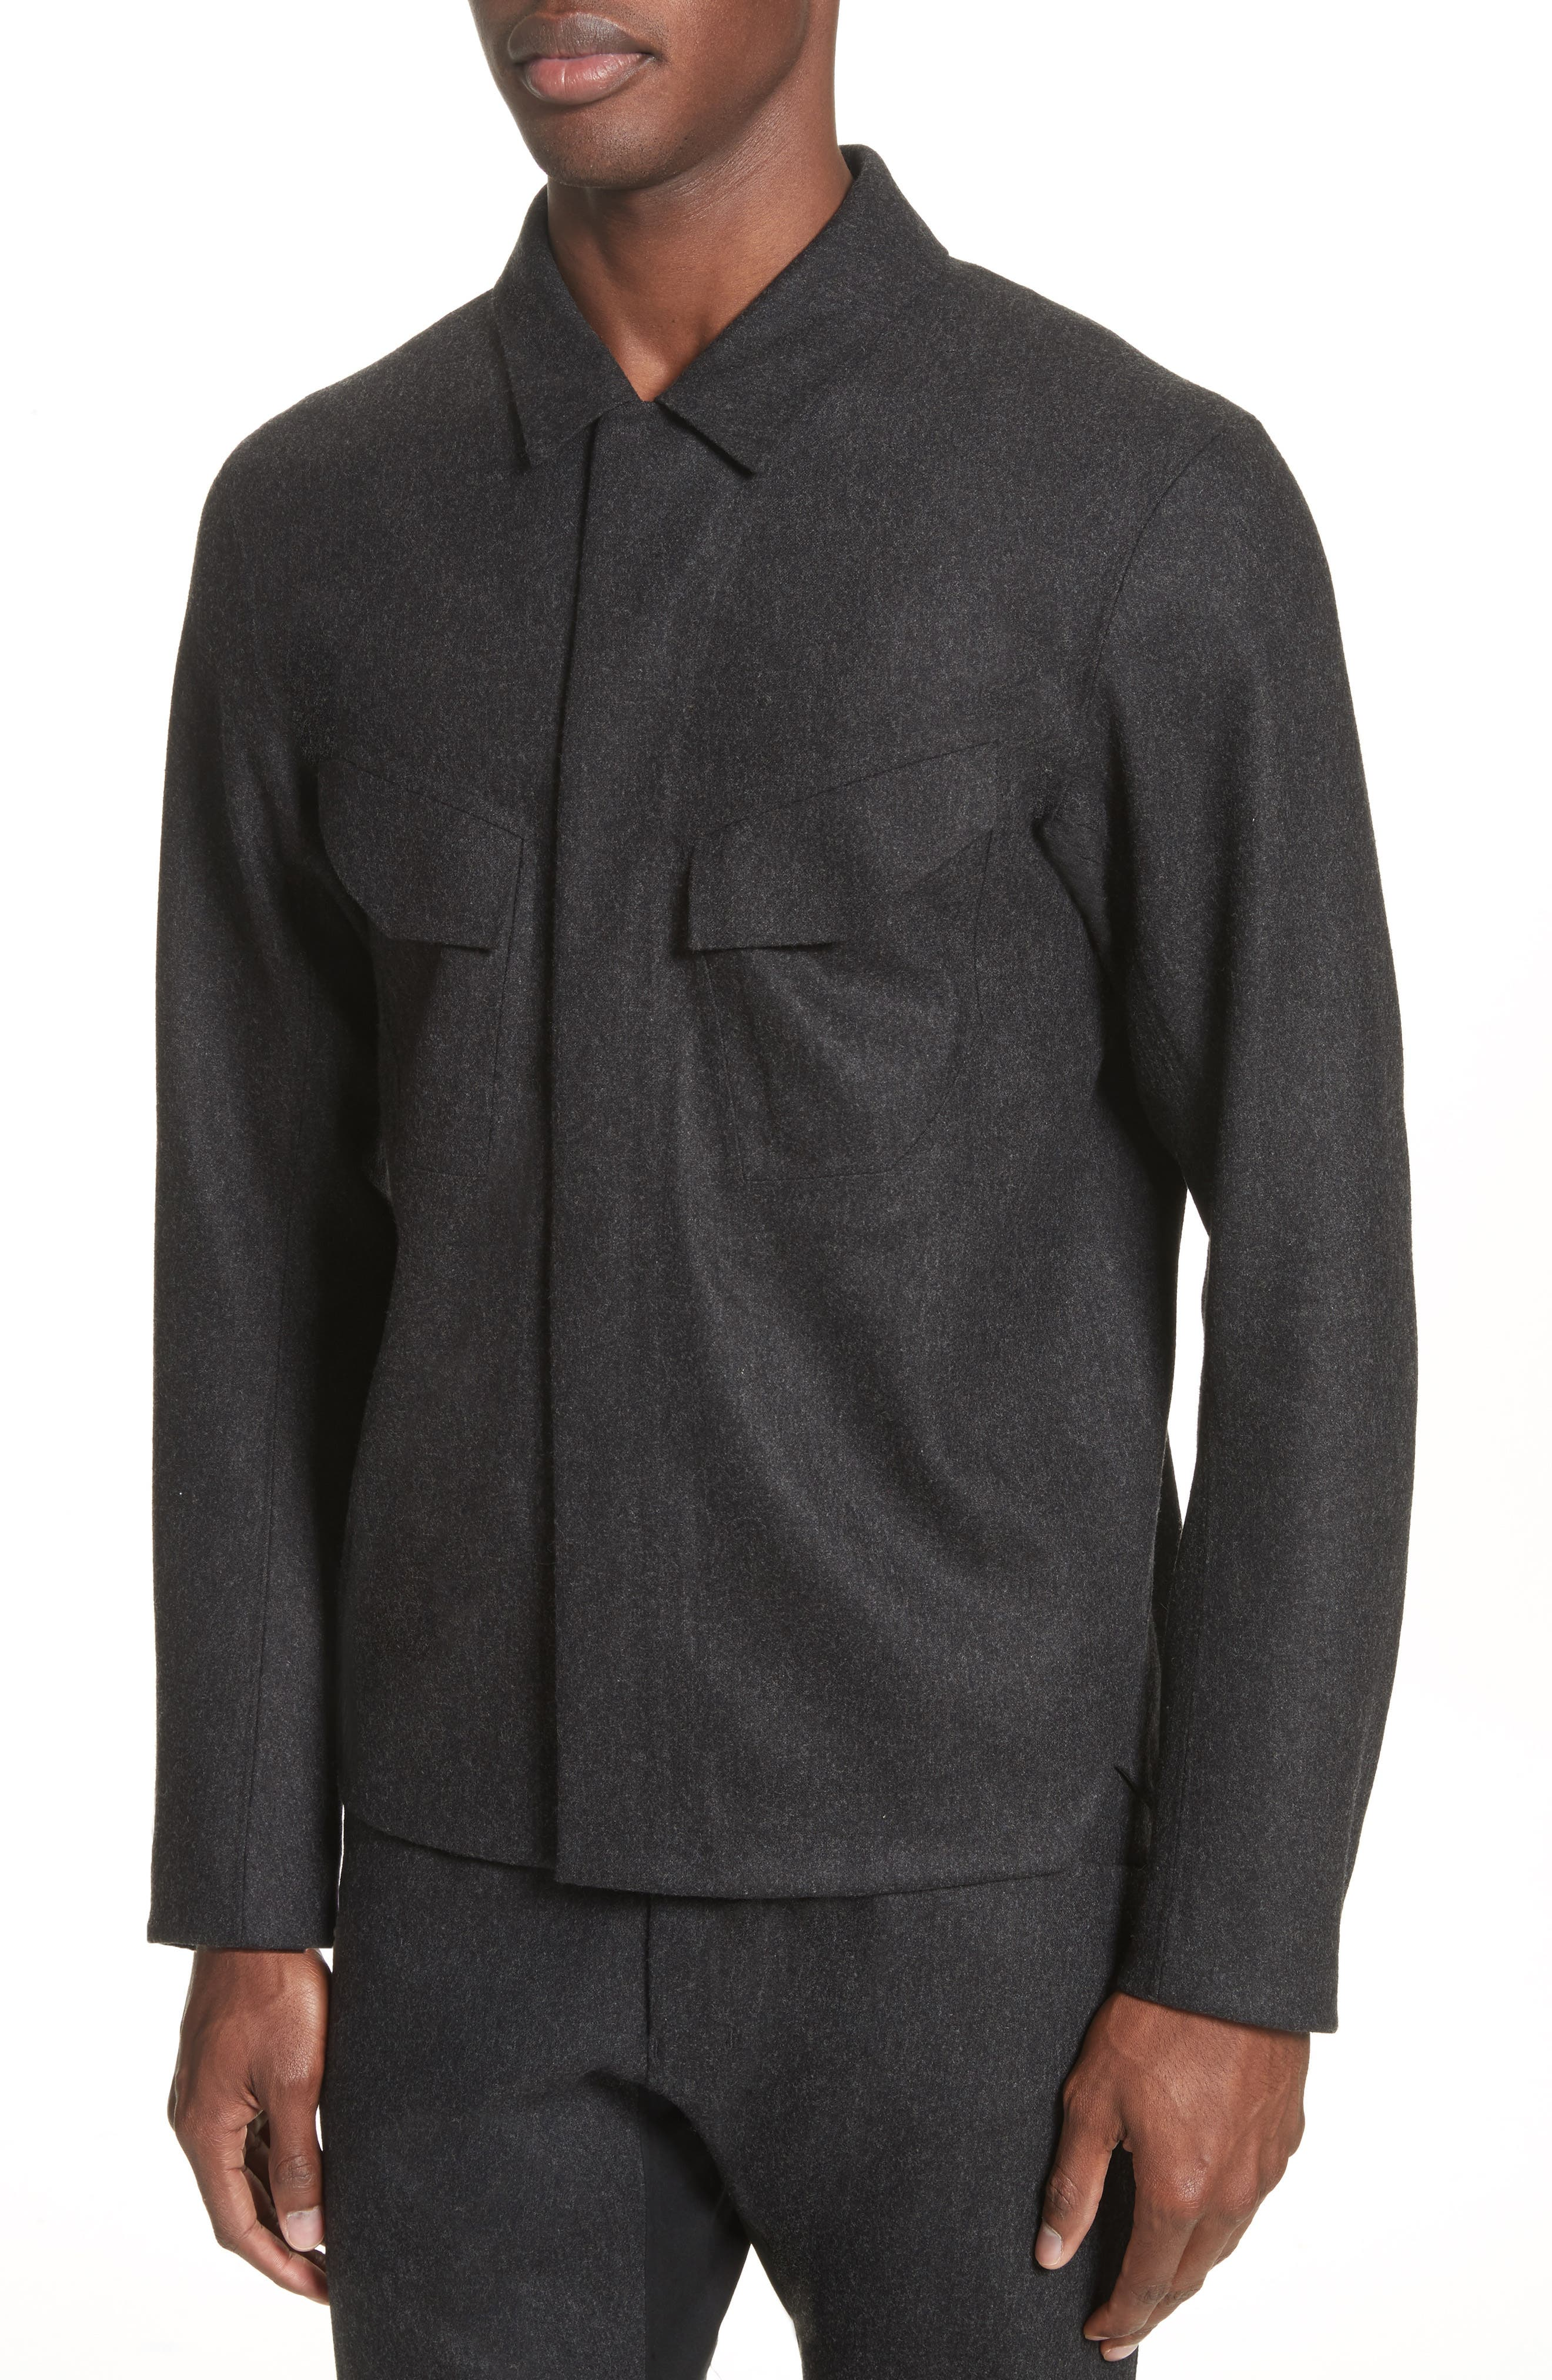 Haedn Shirt Jacket,                             Alternate thumbnail 4, color,                             Black Heather